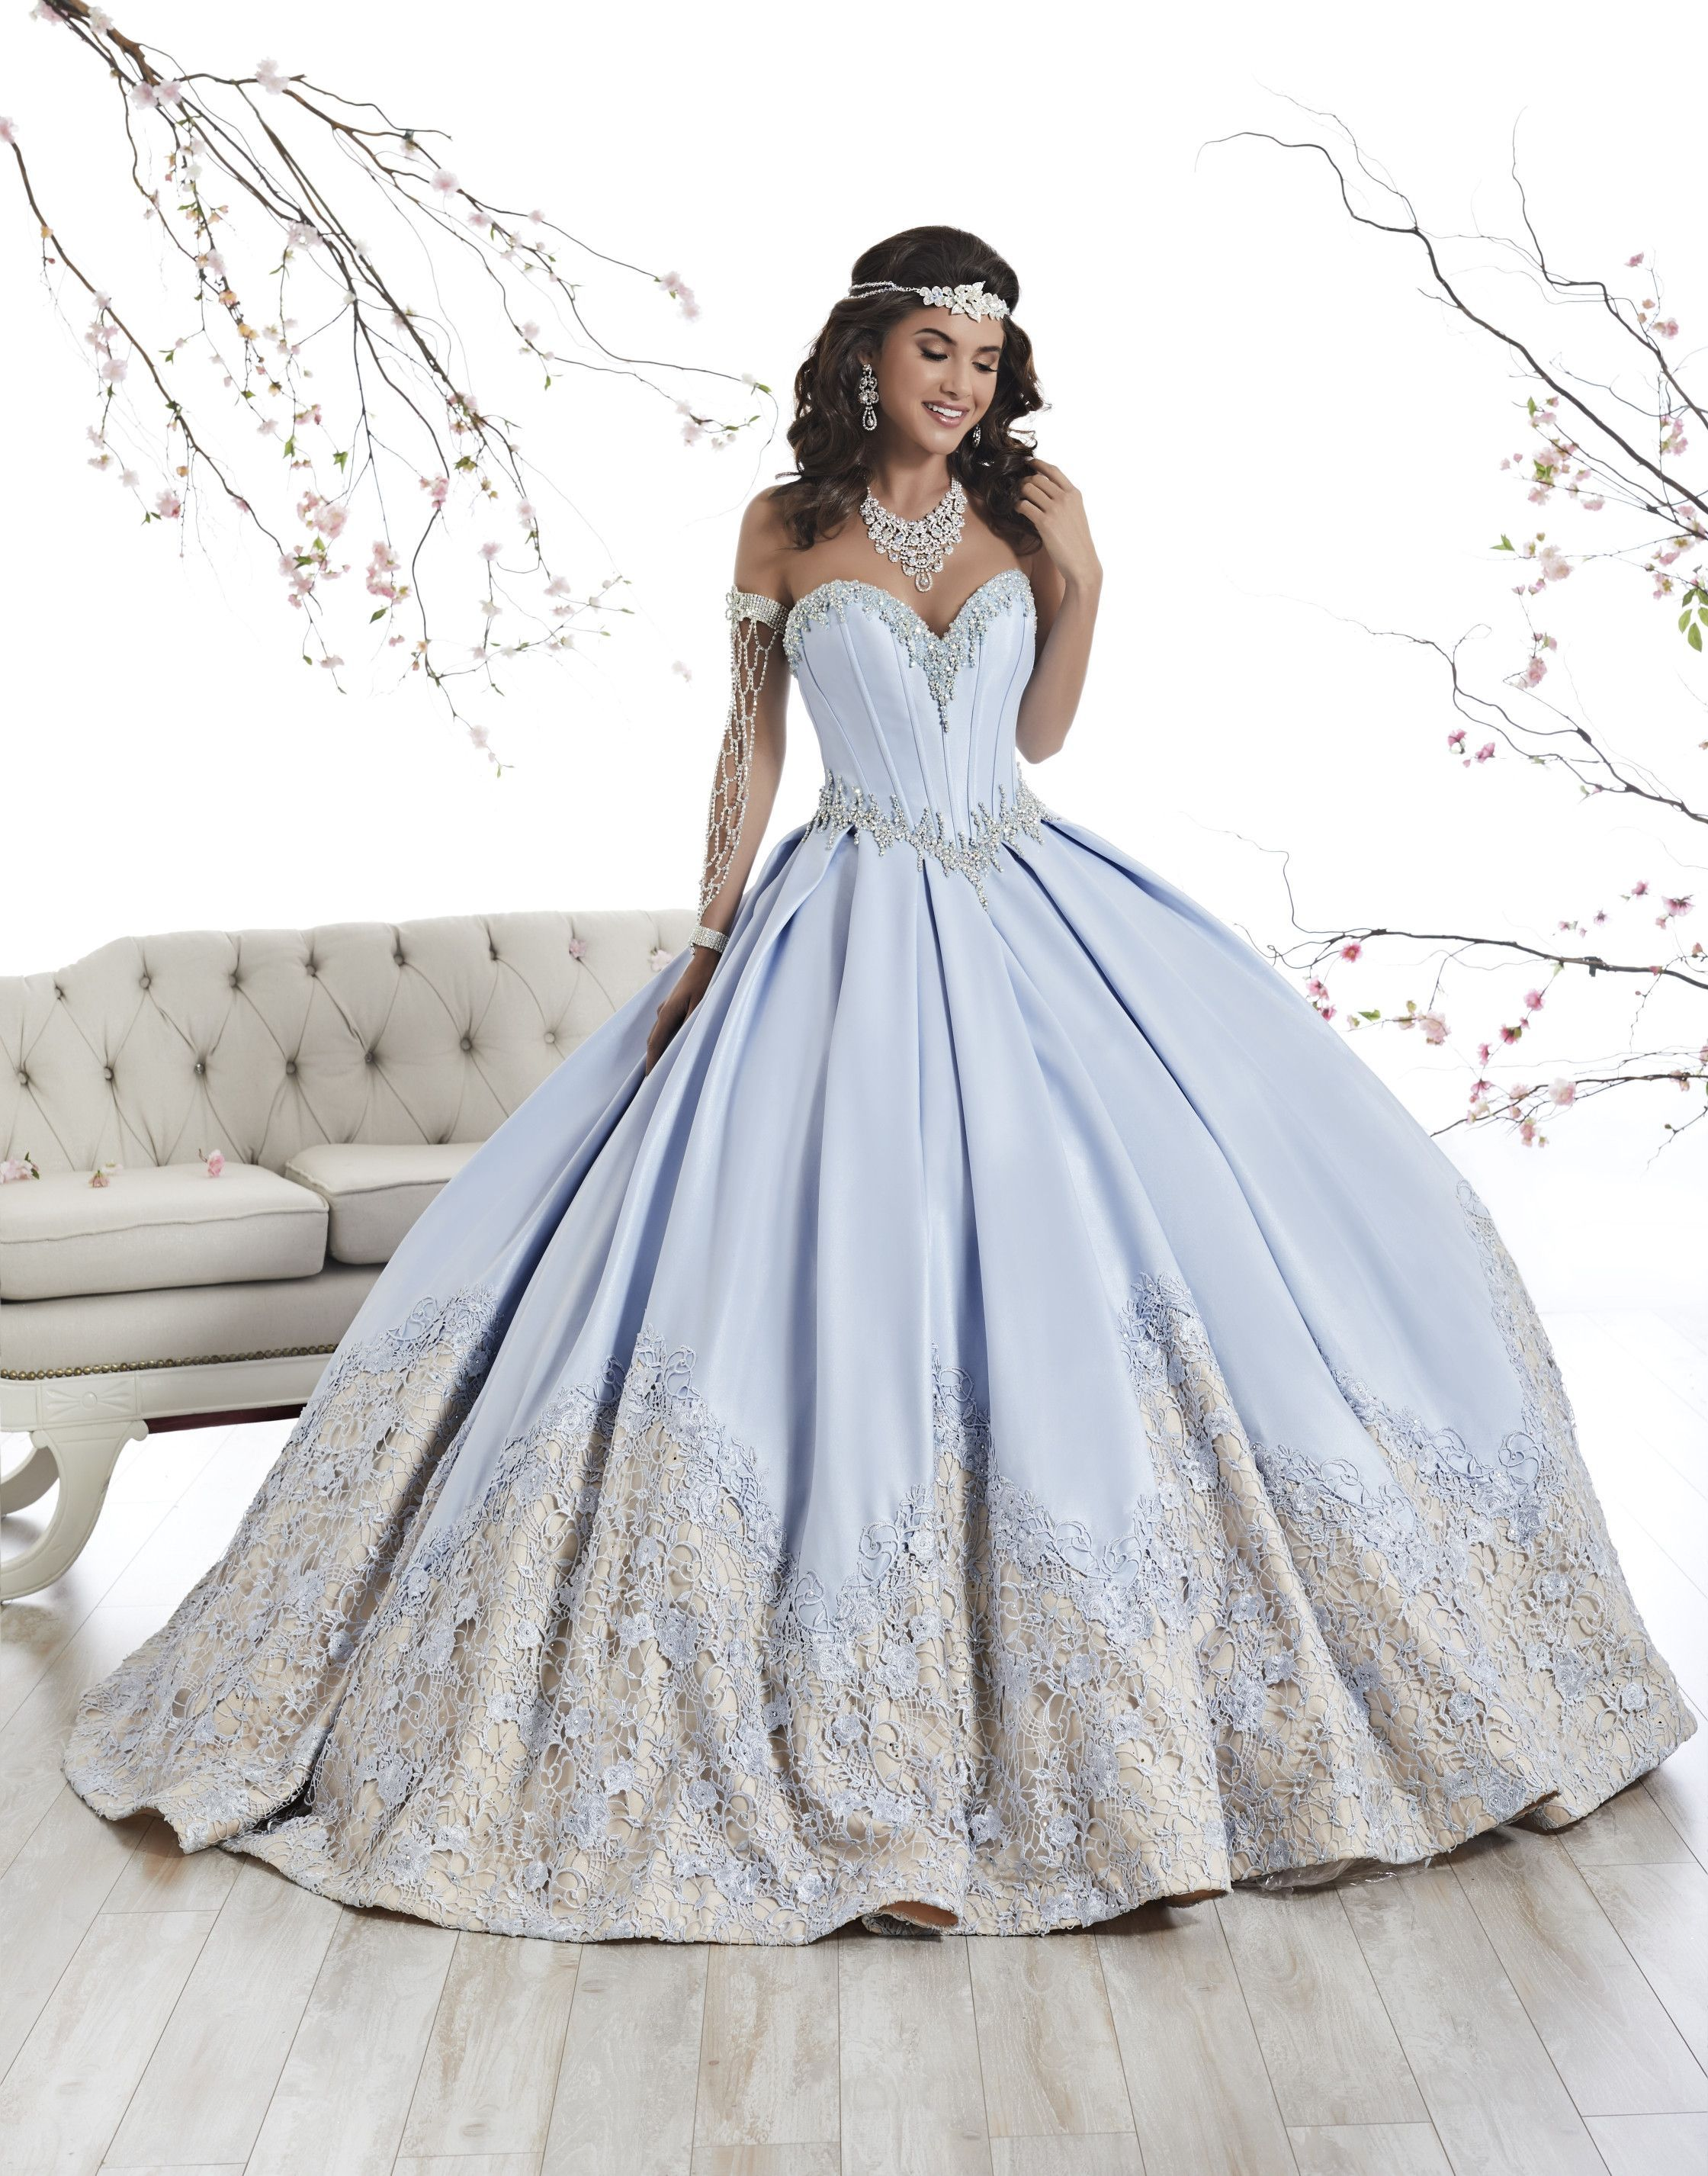 0befe257718 Strapless A-line Satin Quinceanera Dress by House of Wu 26874